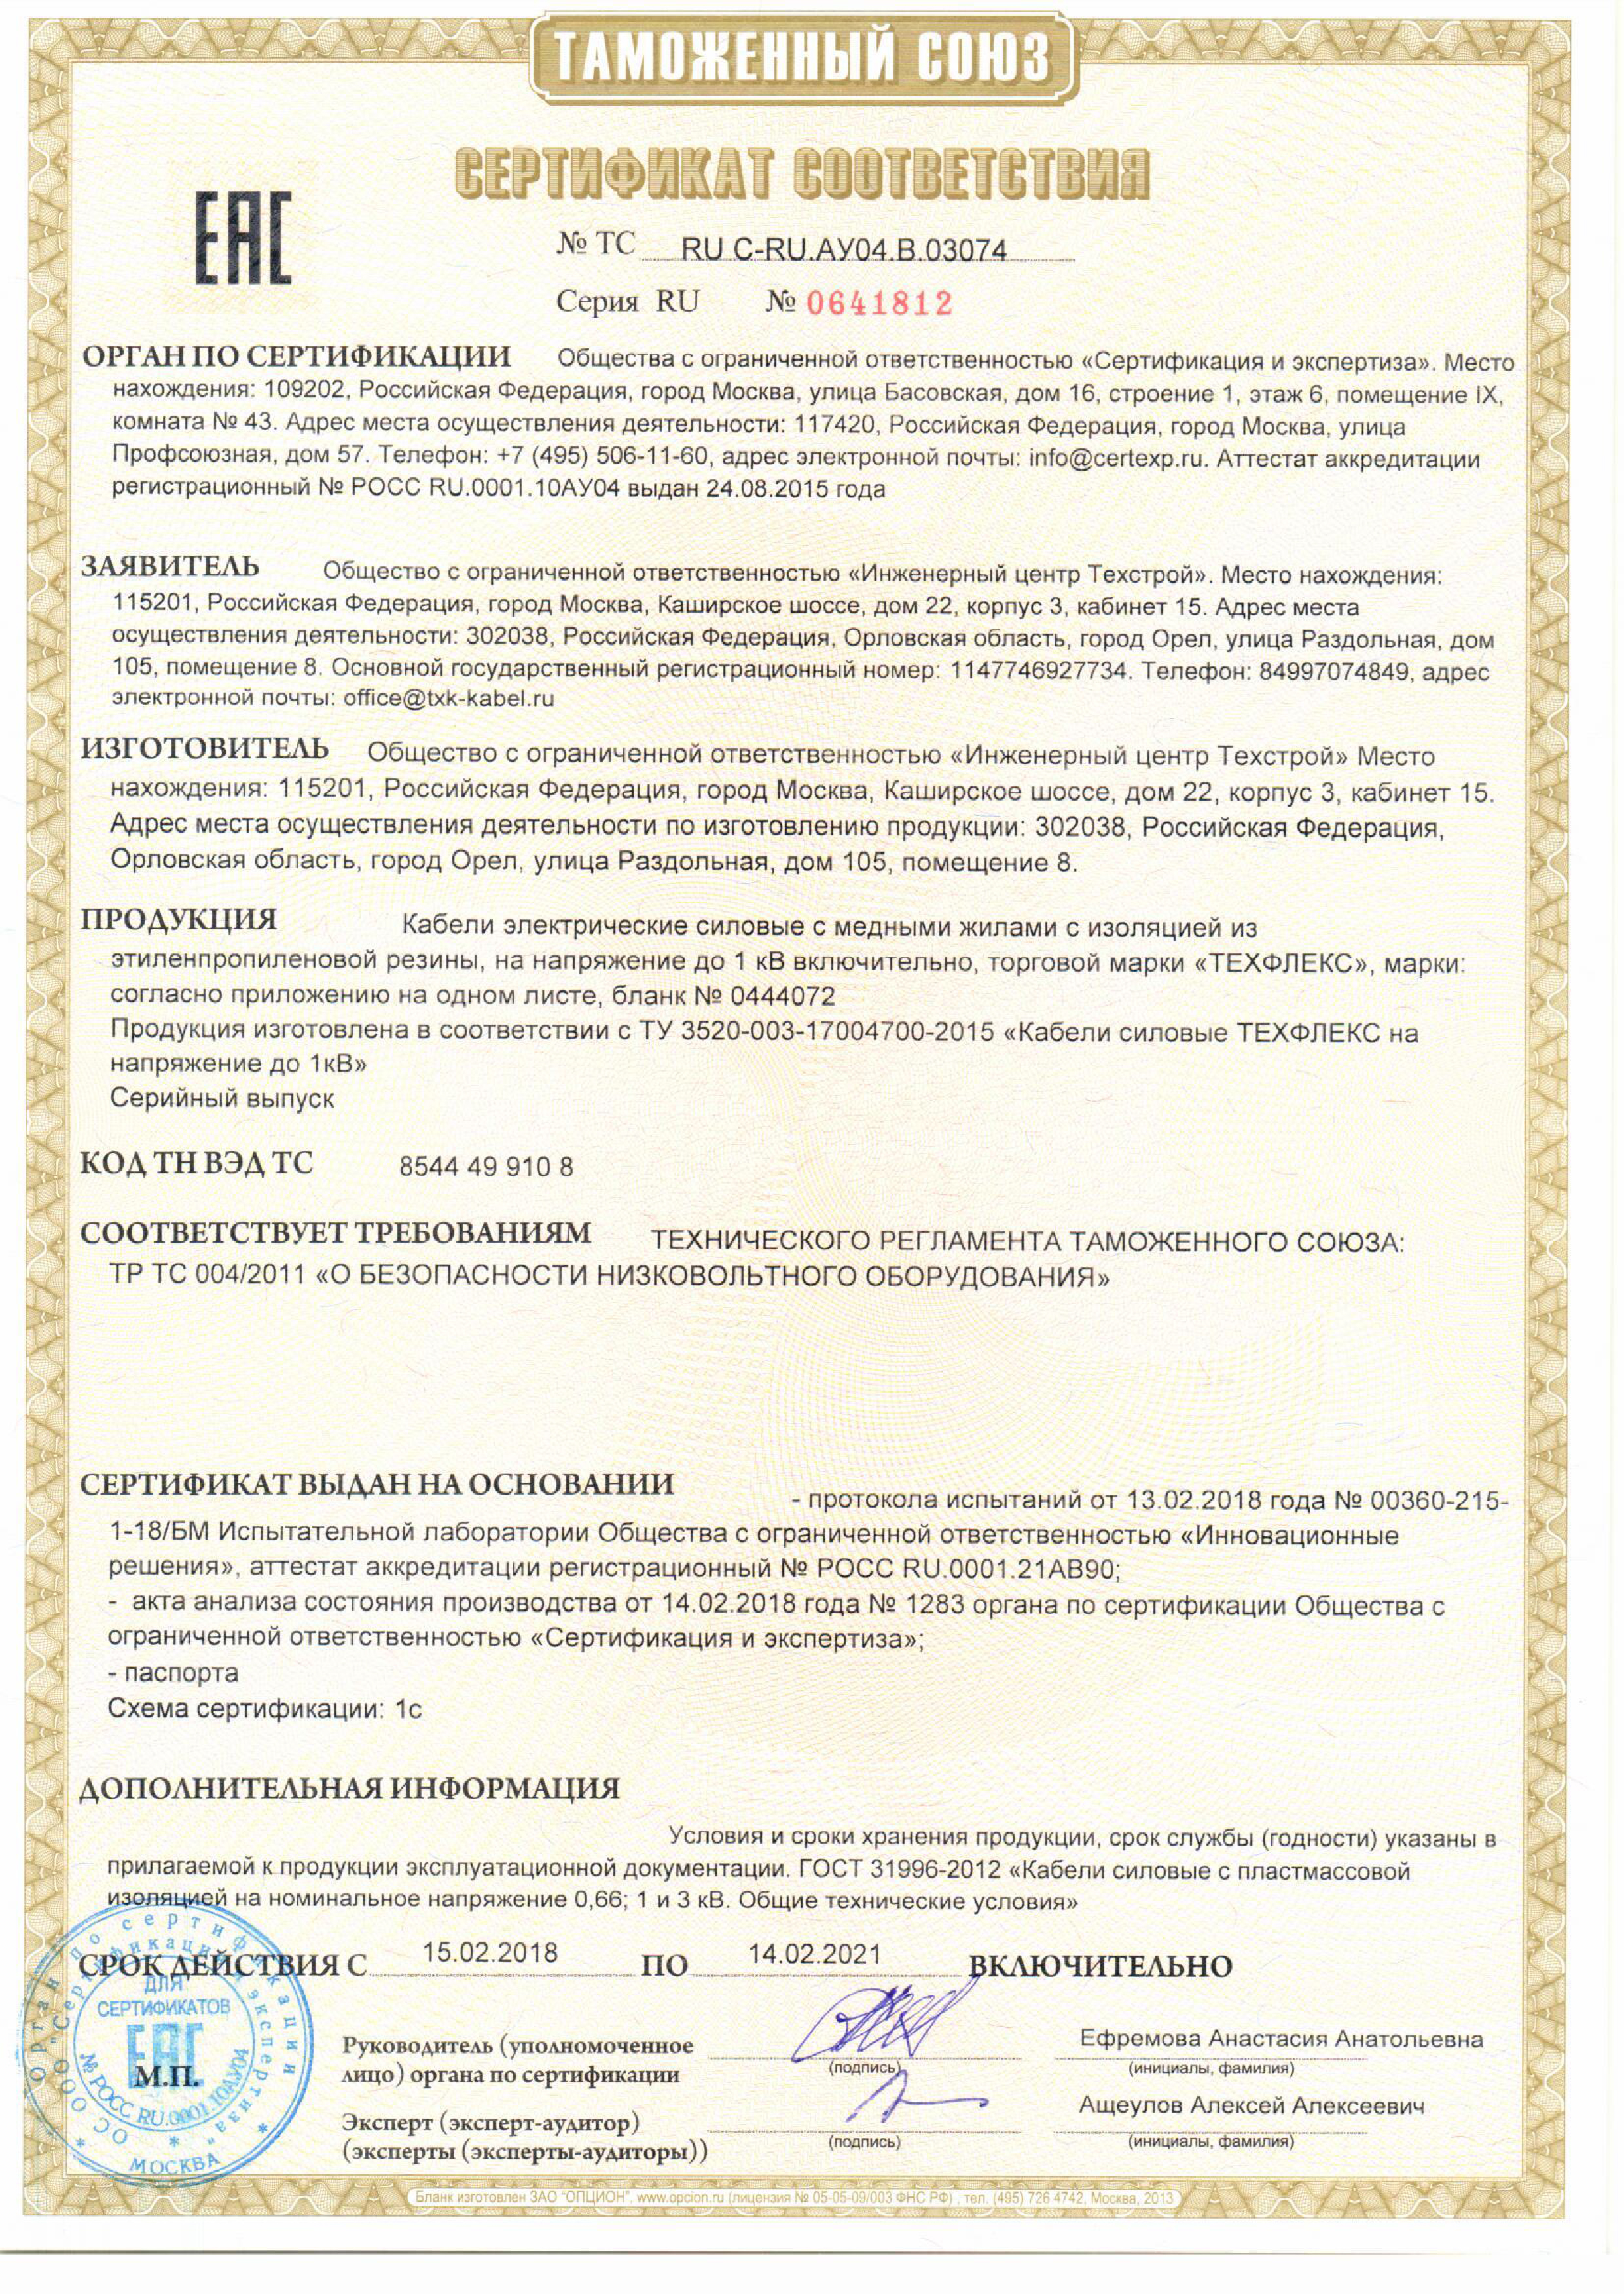 Certificate of Conformity to the Requirements of TRTS for Safety of Low-Voltage Equipment under 1 kV